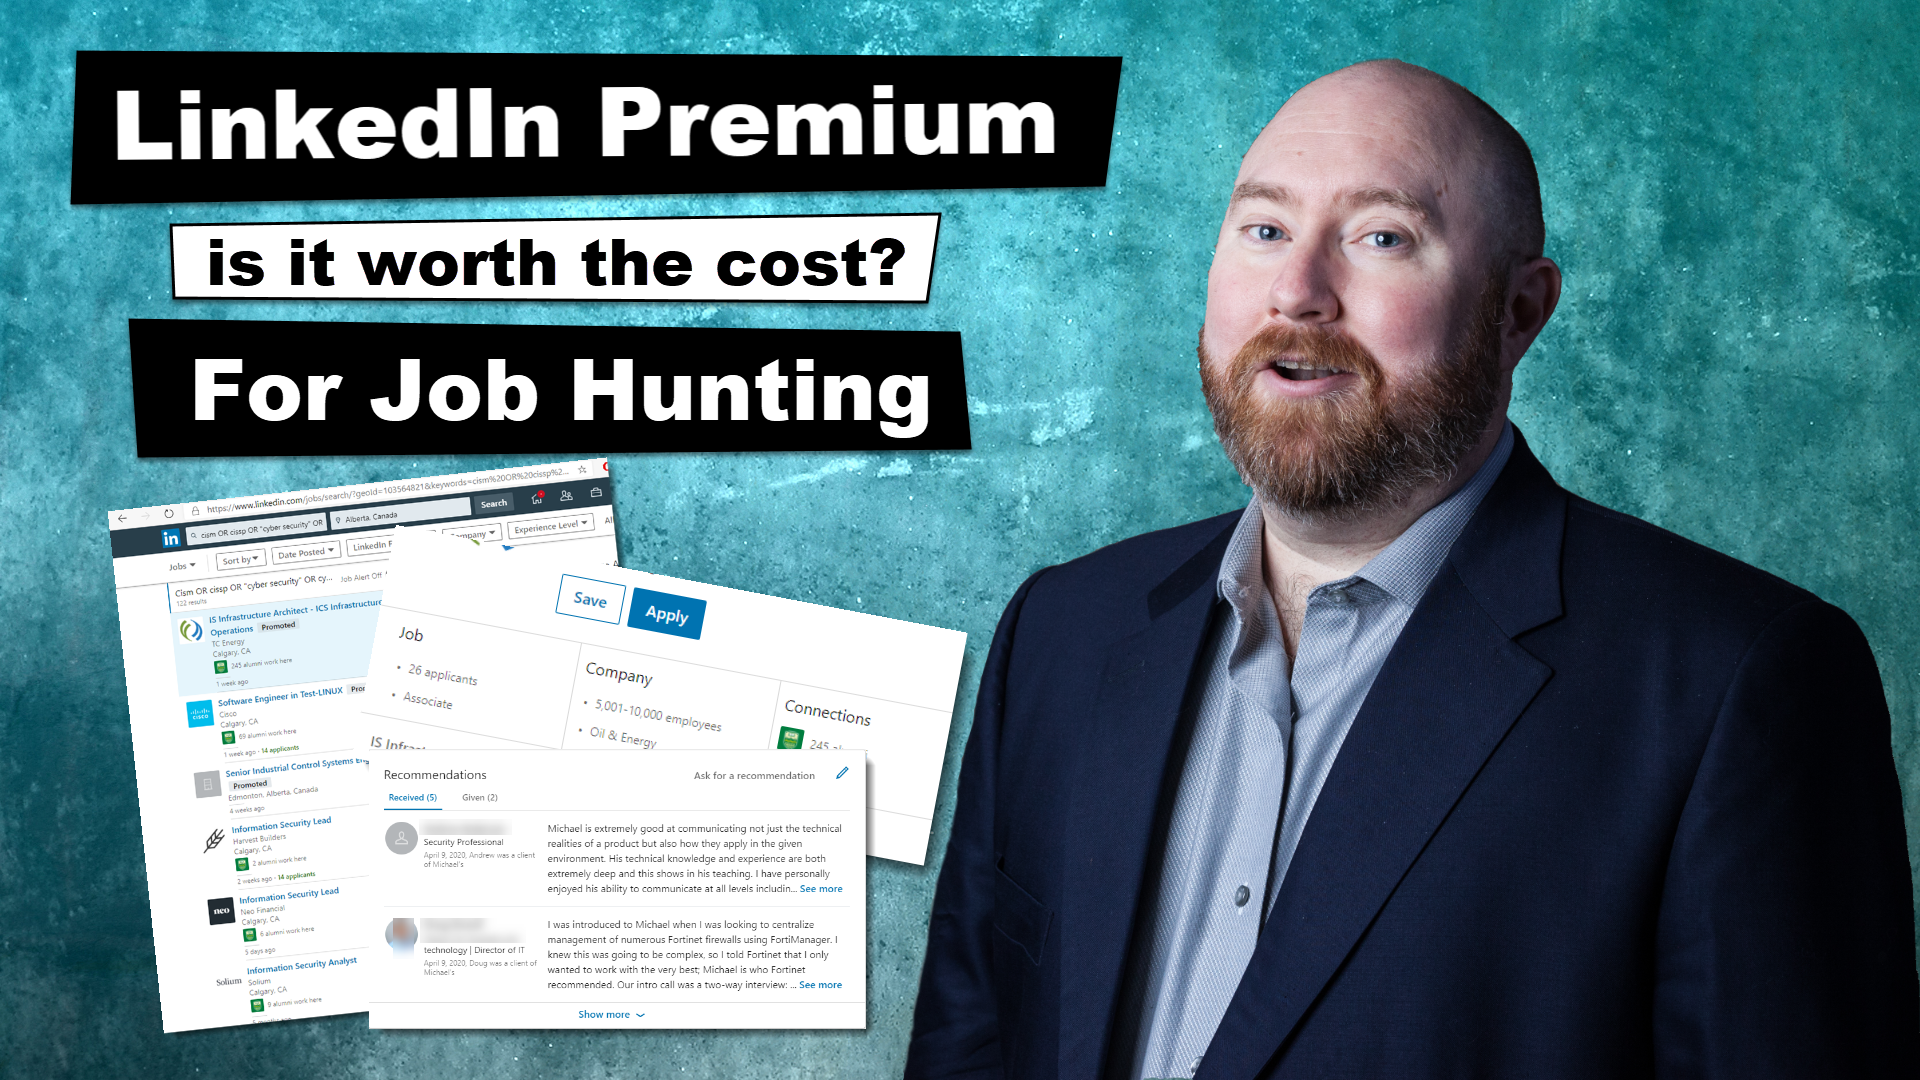 Is LinkedIn Premium Worth the Cost?